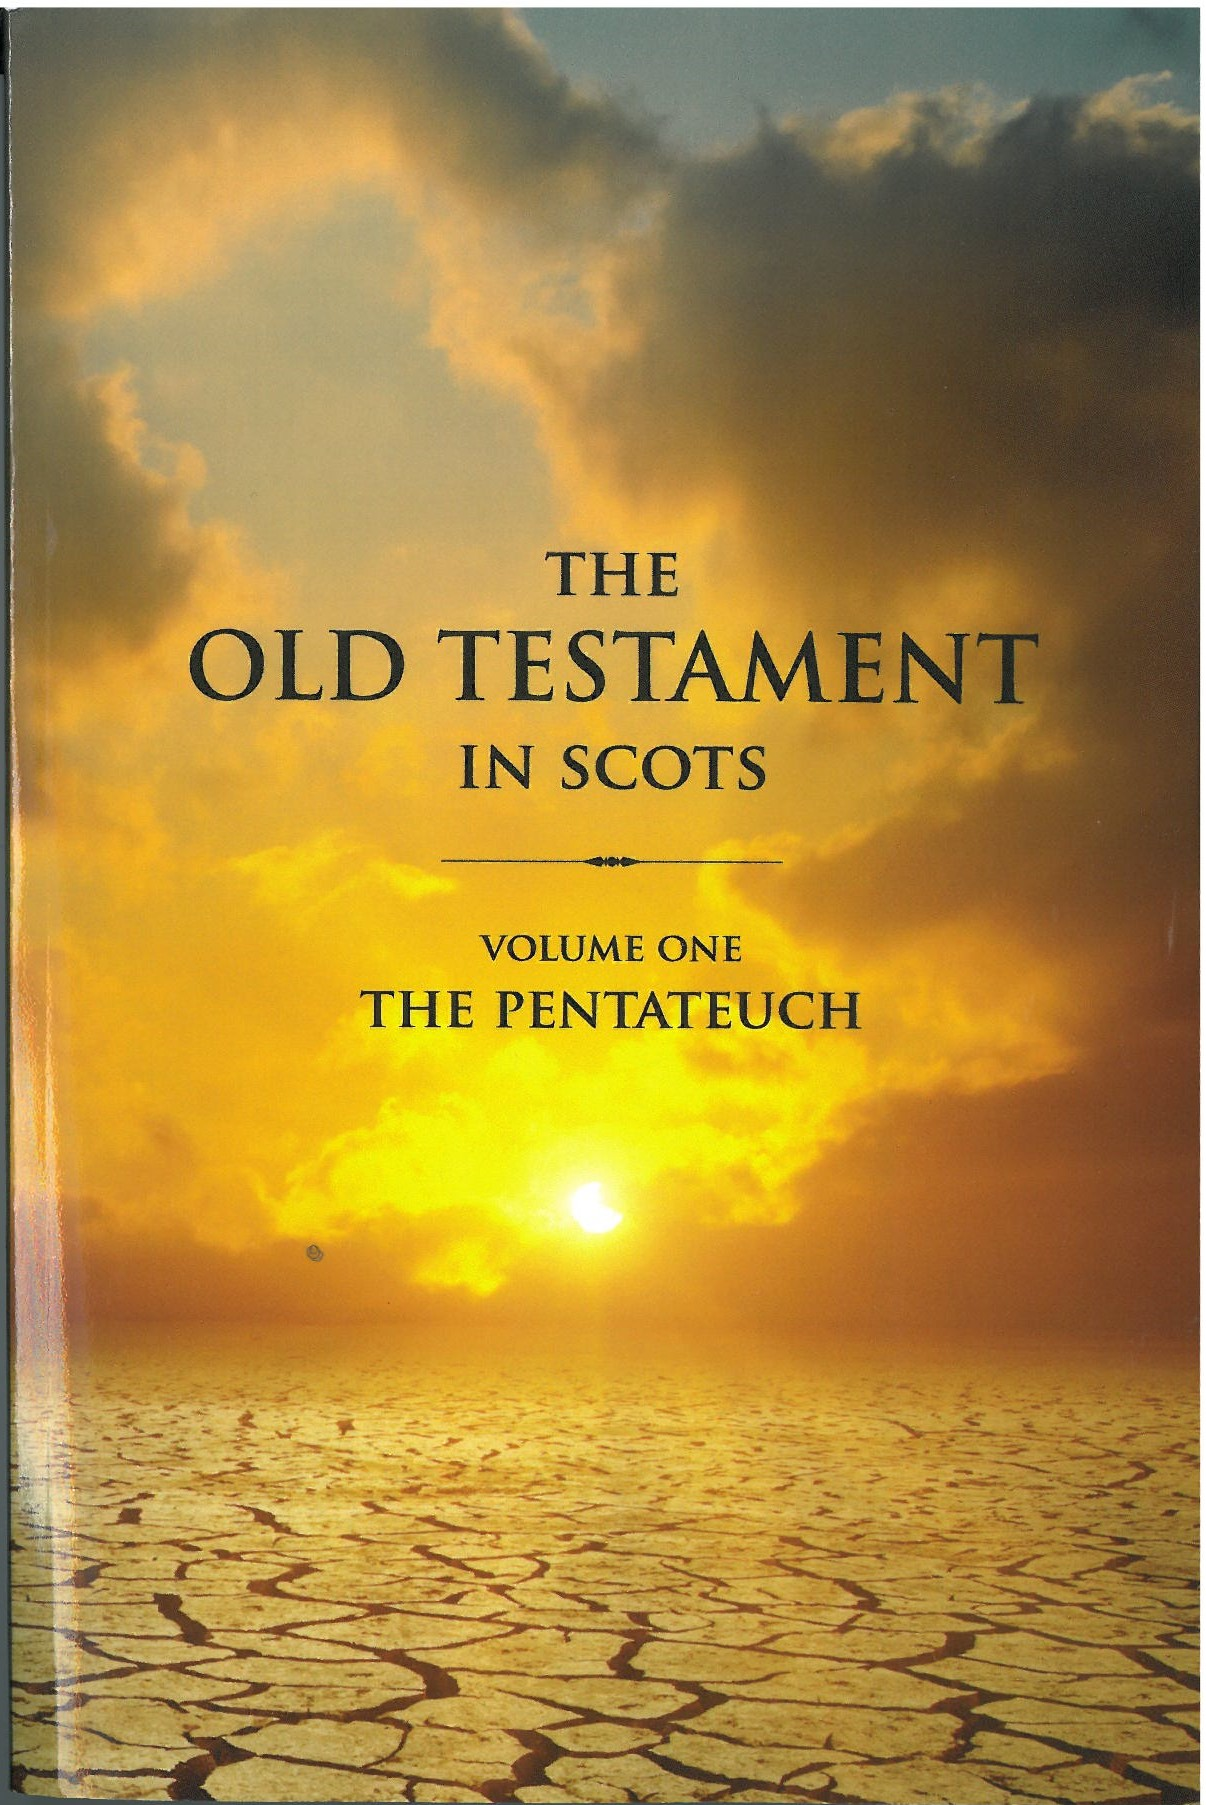 salvation in the old testament essay Although discussions concerning what old testament saints did or did not understand concerning salvation are profitable, these differences in opinion do not constitute essential differences in the way of salvation--merely the details of the content of faith.